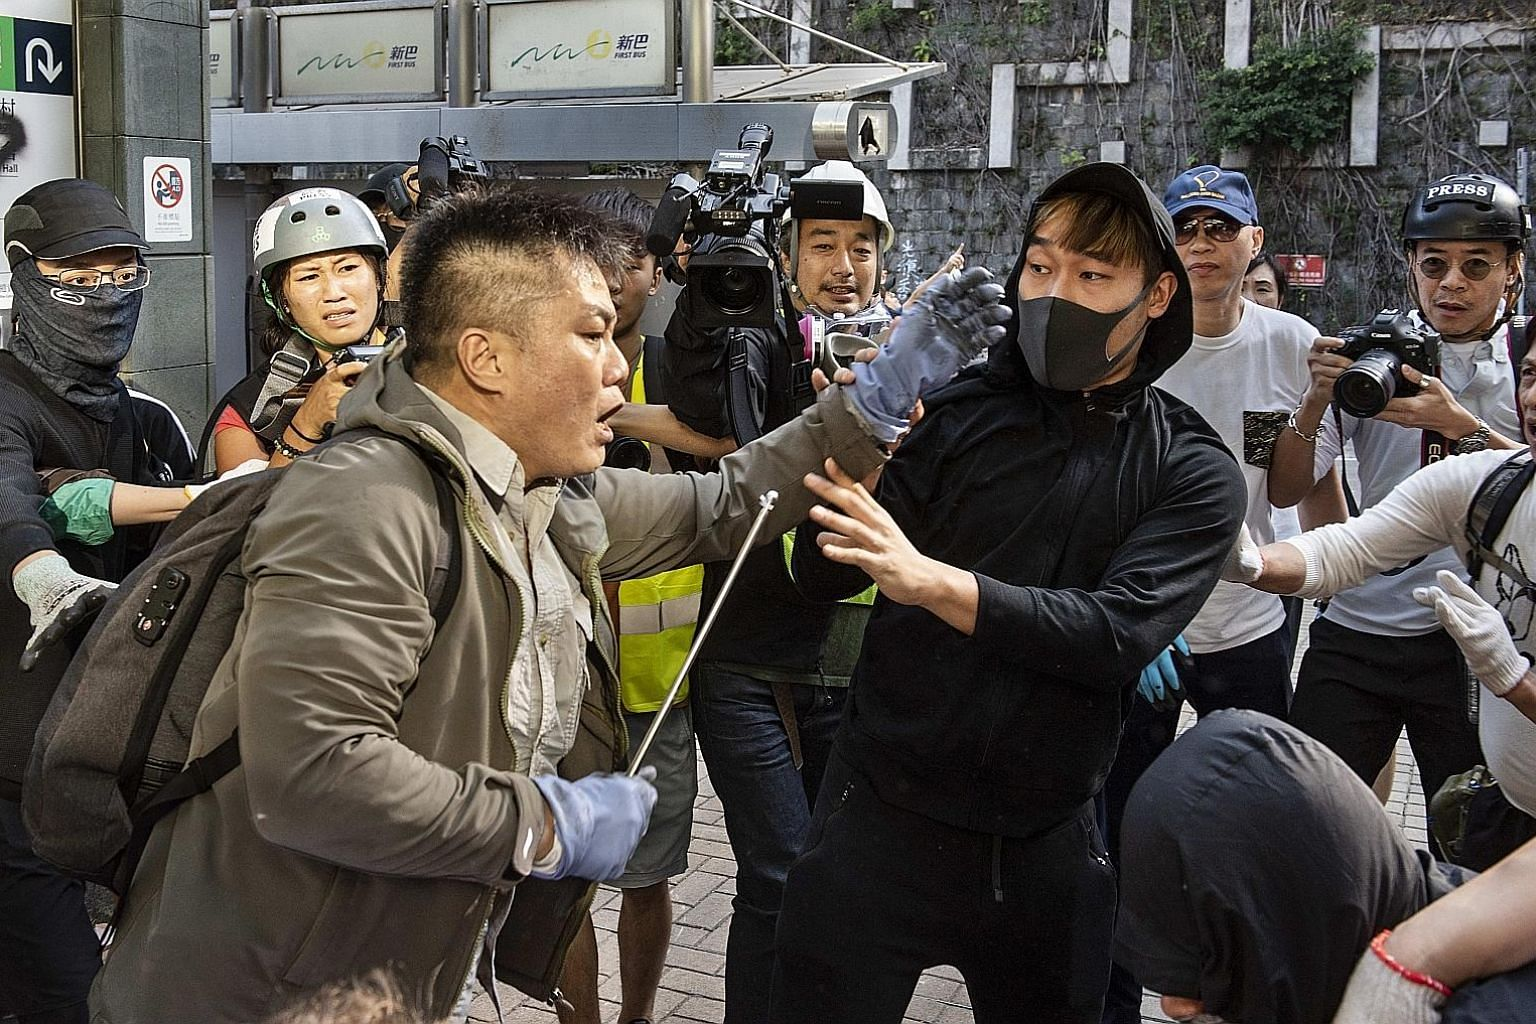 A Hong Kong resident clashing with anti-government demonstrators at Hong Kong University during an anti-government protest last Saturday. The situation in the city is a nightmare for Chinese President Xi Jinping, who has made the restoration of China